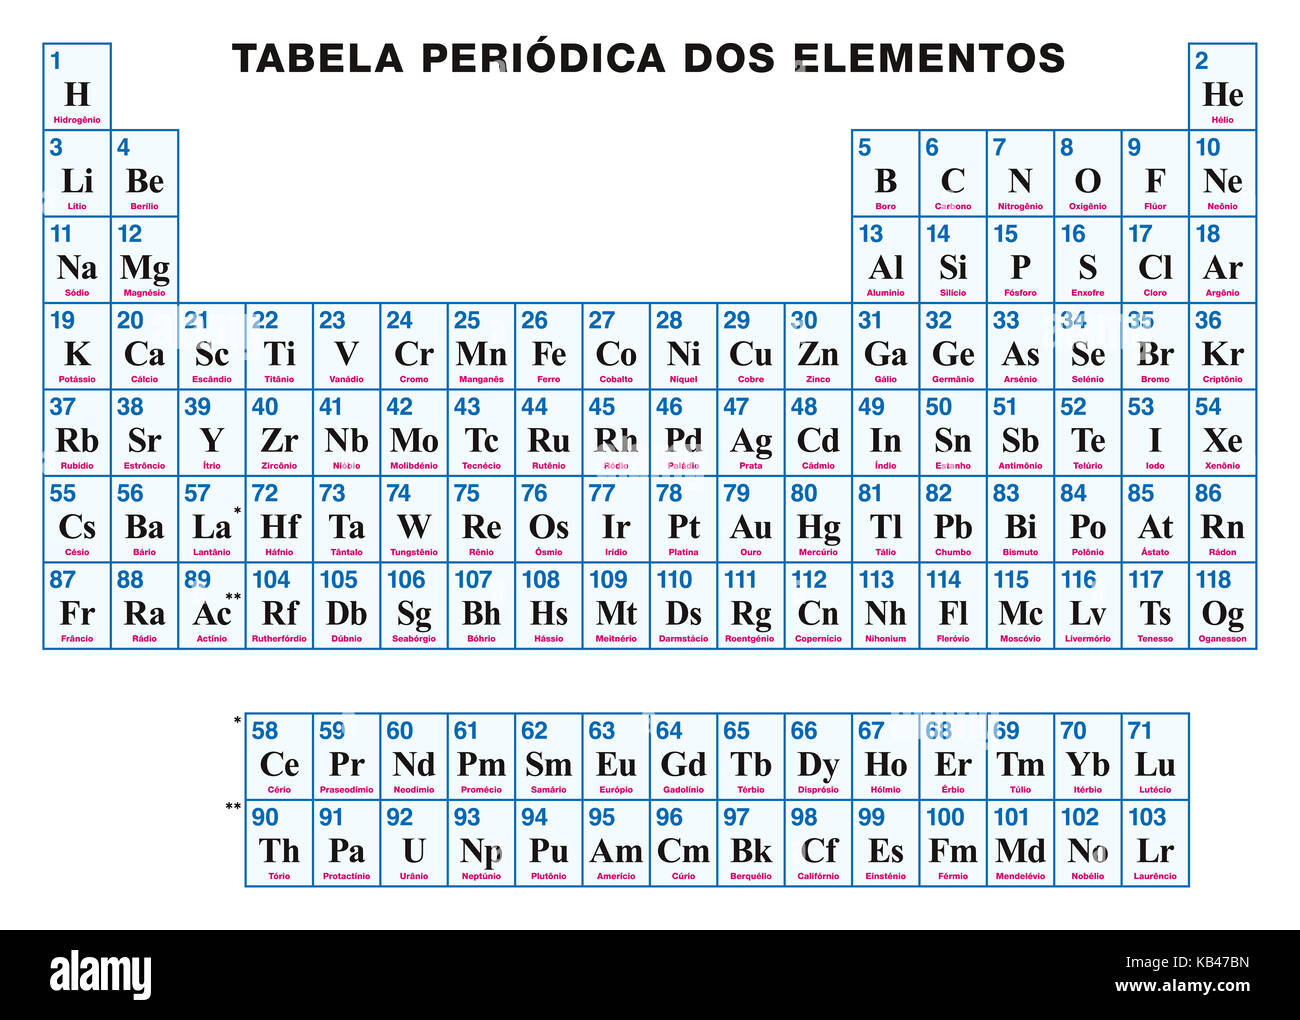 Periodic table of the elements portuguese tabular arrangement of periodic table of the elements portuguese tabular arrangement of chemical elements with atomic numbers symbols and names 118 confirmed elements urtaz